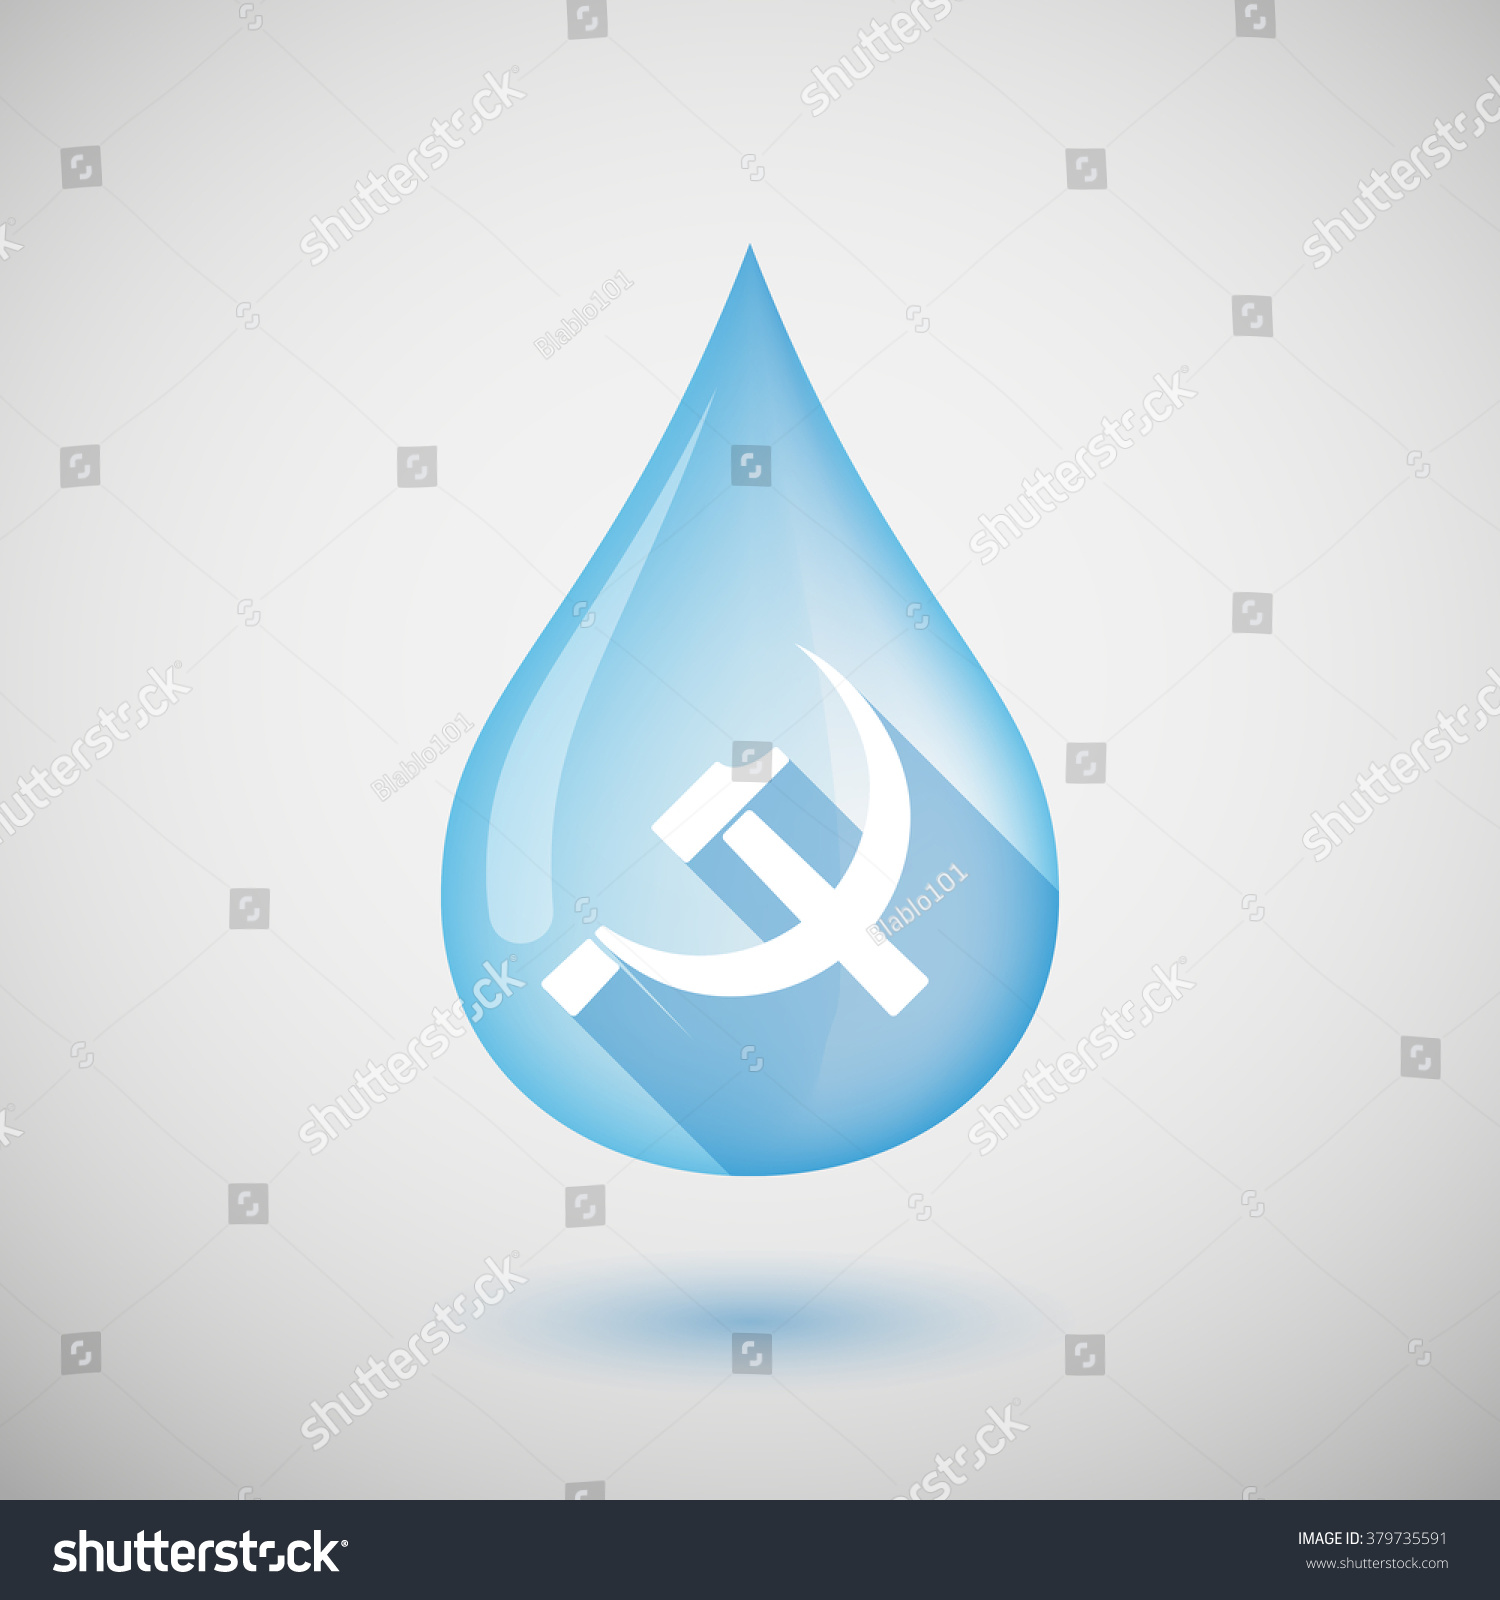 Illustration long shadow water drop icon stock vector 379735591 illustration of a long shadow water drop icon with the communist symbol biocorpaavc Image collections